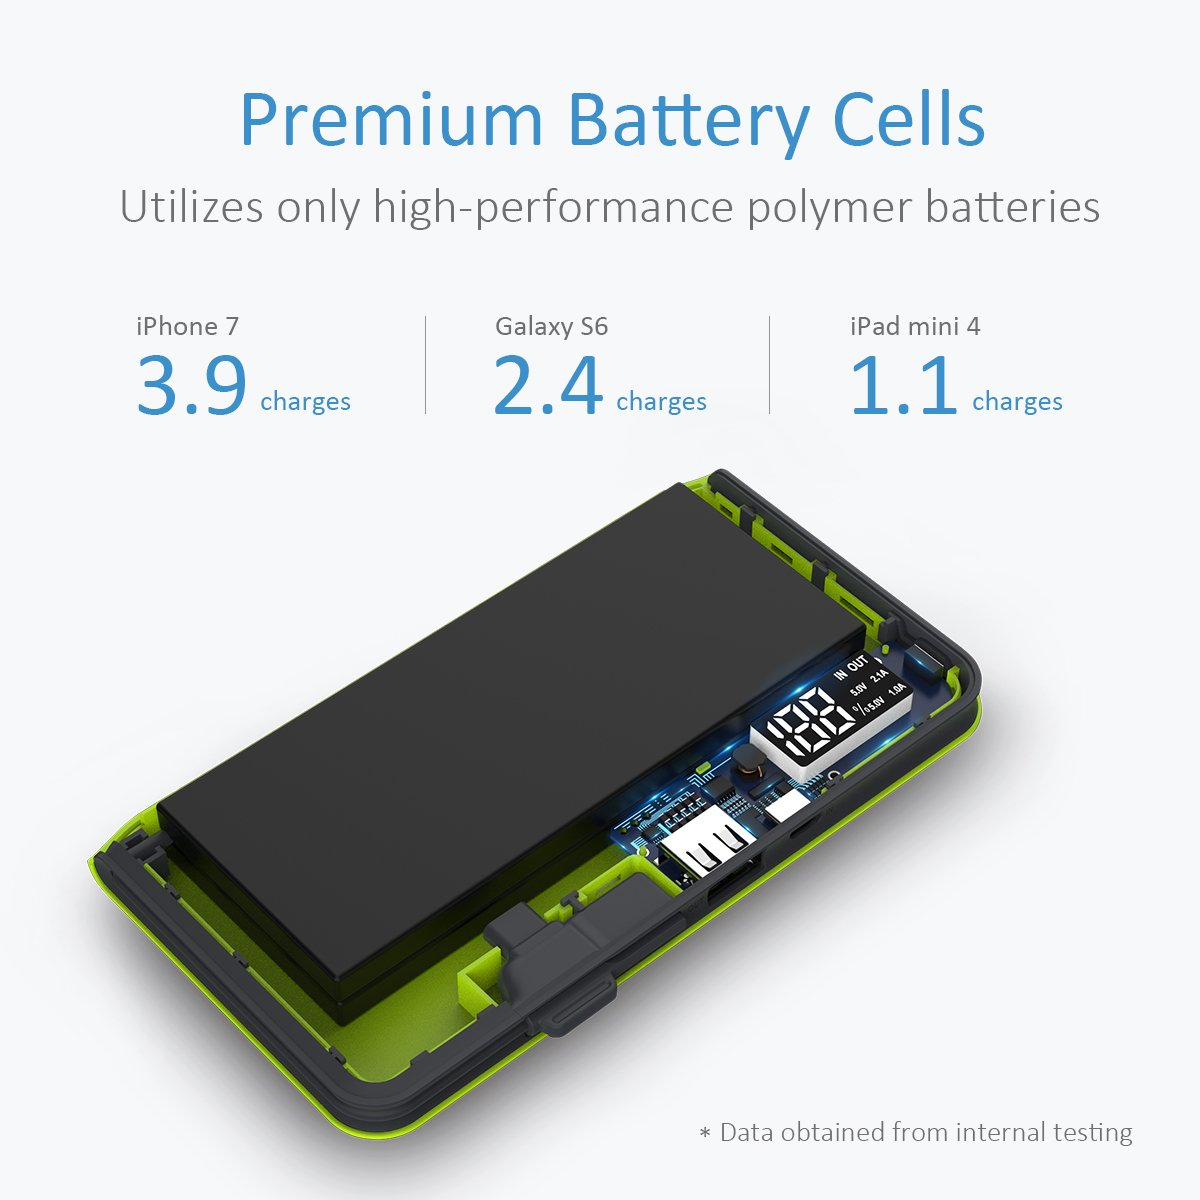 WST 10000mAh Portable Charger Power Core(2 USB Ports, Li-polymer Battery) Power Bank, High-Speed Charging with LED Display and Compact External Battery Charge for iPhone/iPad/Android/Samsung Galaxy